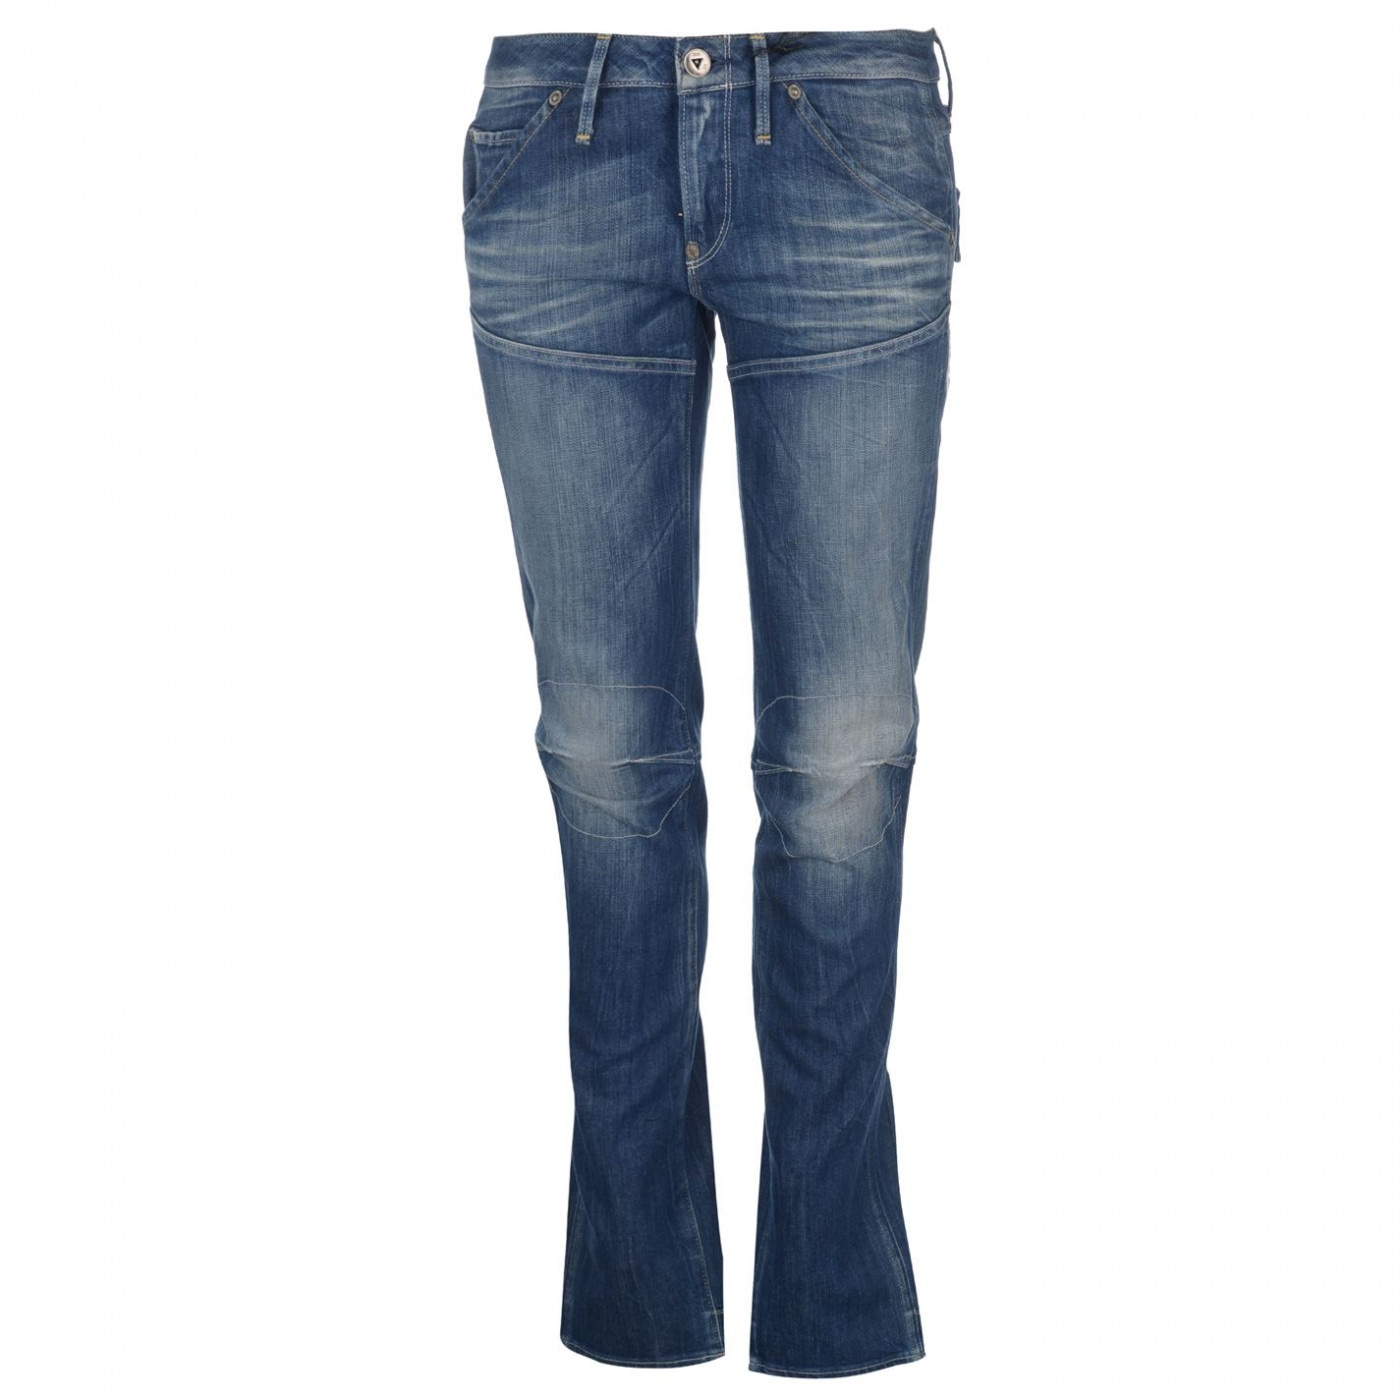 G Star 6009 Jeans